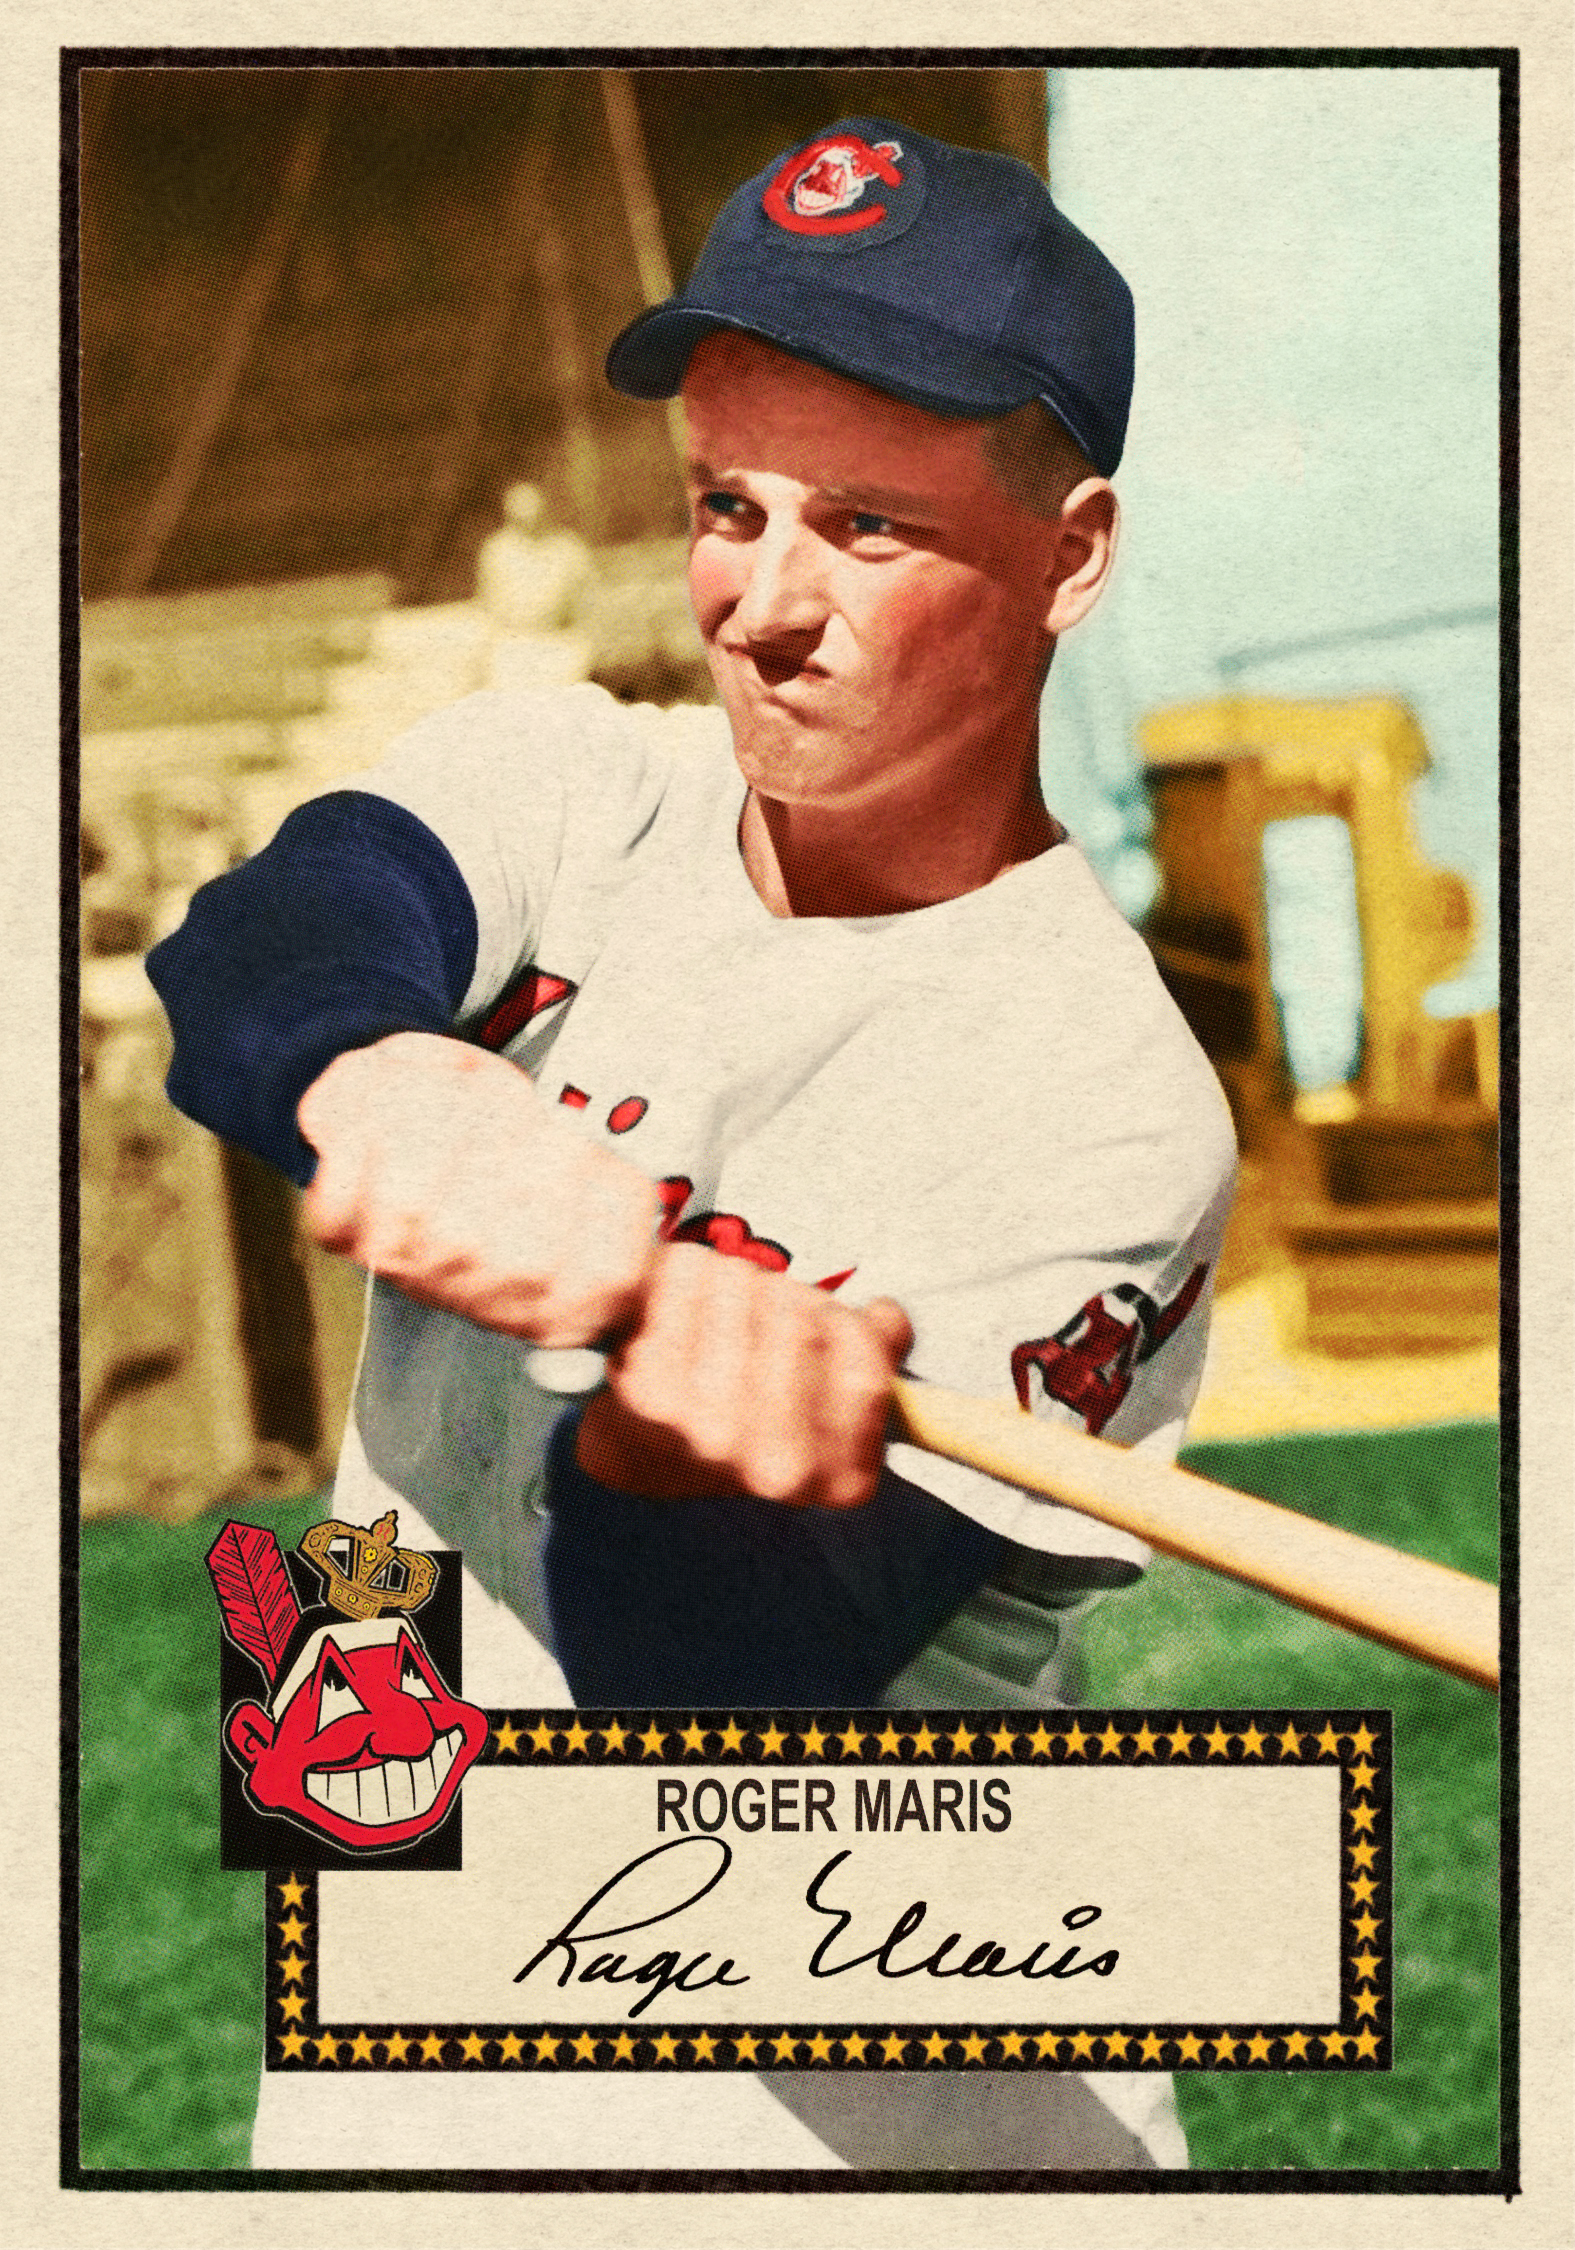 1952 BANTY RED BASEBALL STARS SERIES #152 ROGER MARIS - 1/20/17 Auction Closes at 181.49 USD - Current Population of 2